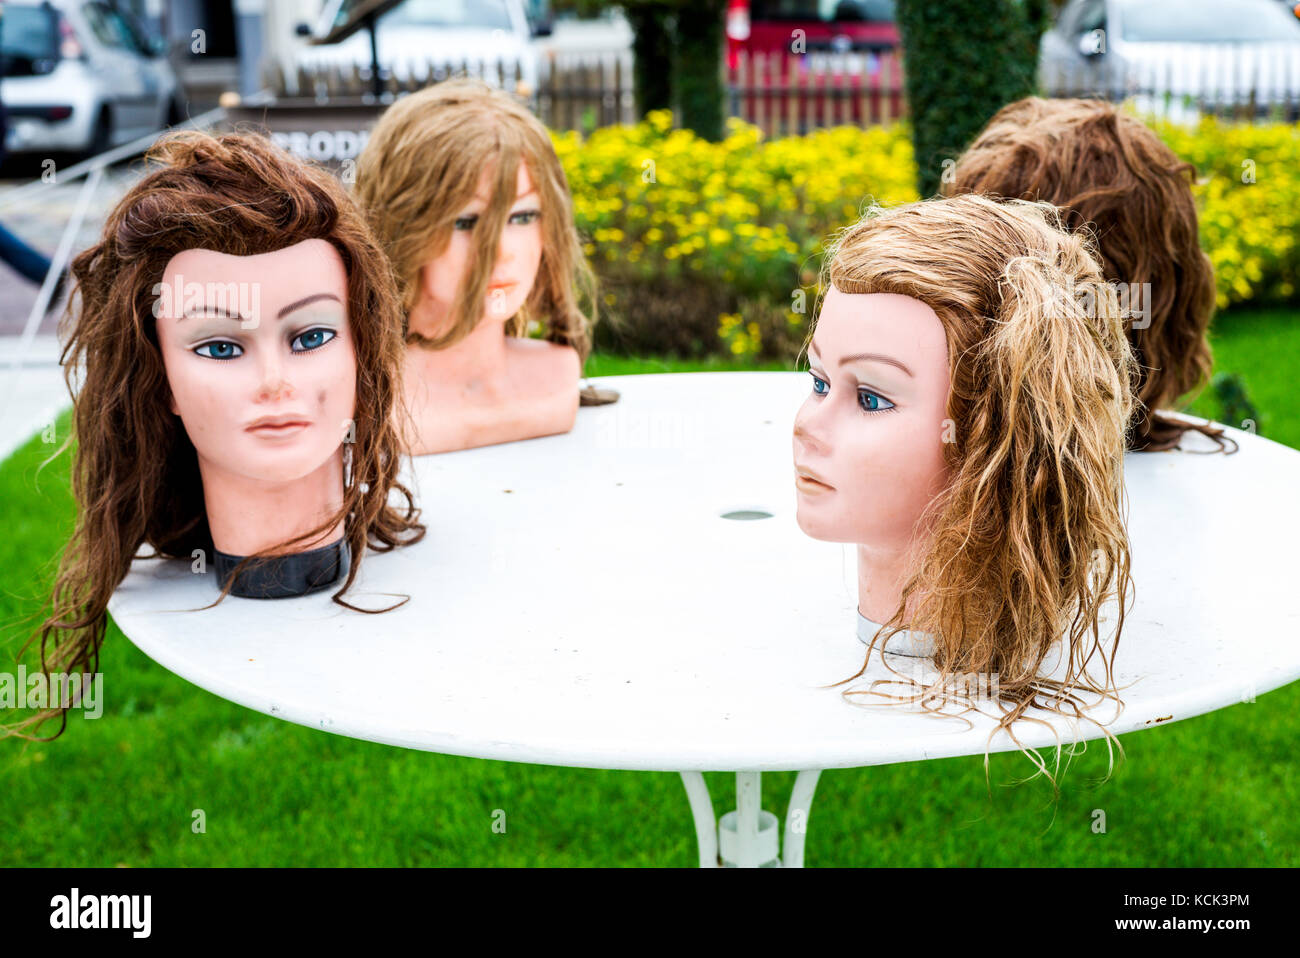 Manequin heads on a table in Boulogne-sur-Mer - Stock Image